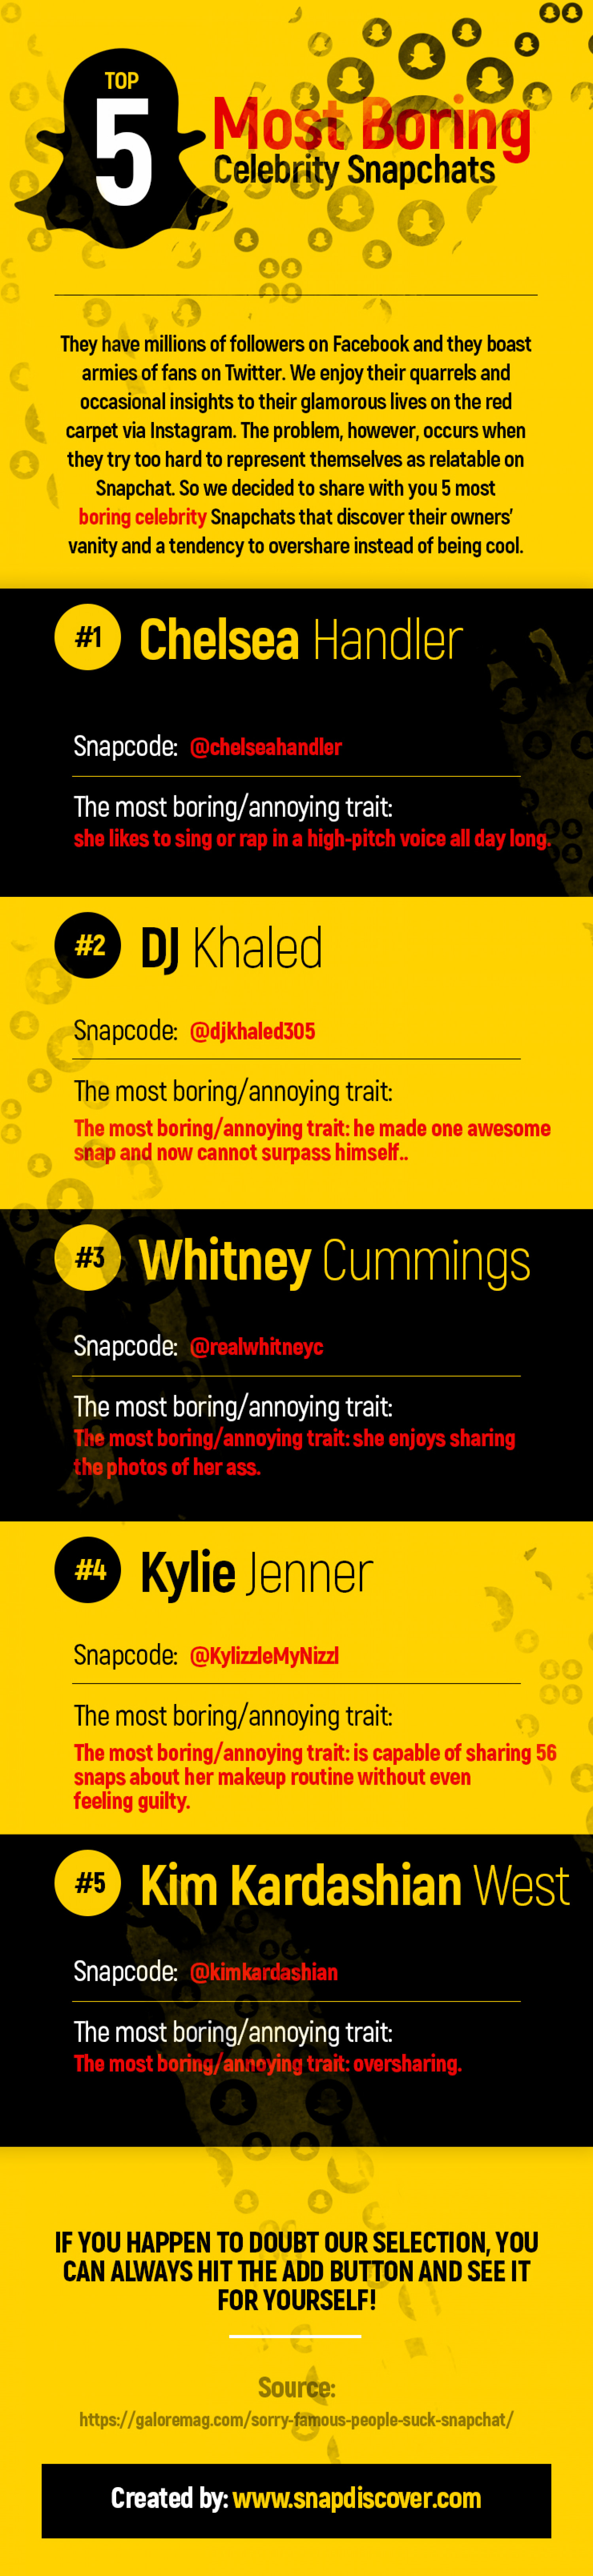 Top 5 Most Boring Celebrity Snapchats Infographic